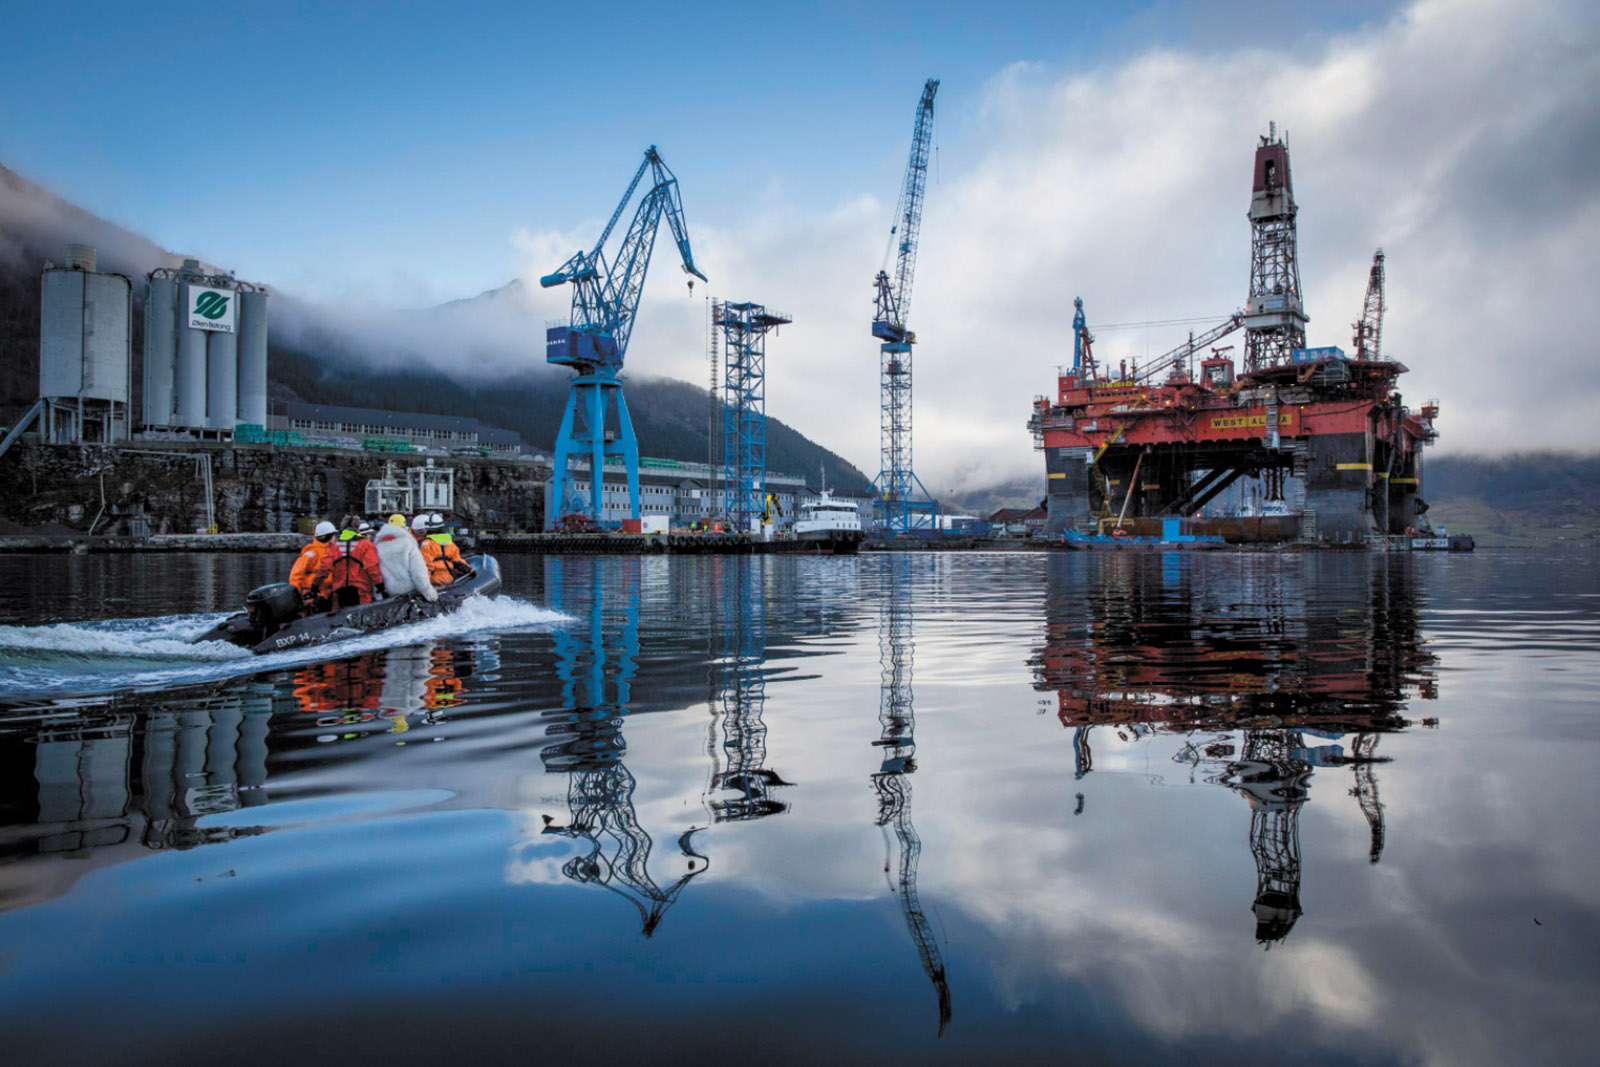 Greenpeace activists preparing to board an ExxonMobil oil rig in Norwegian waters to protest its plans to drill for oil in the Russian Arctic, March 2014